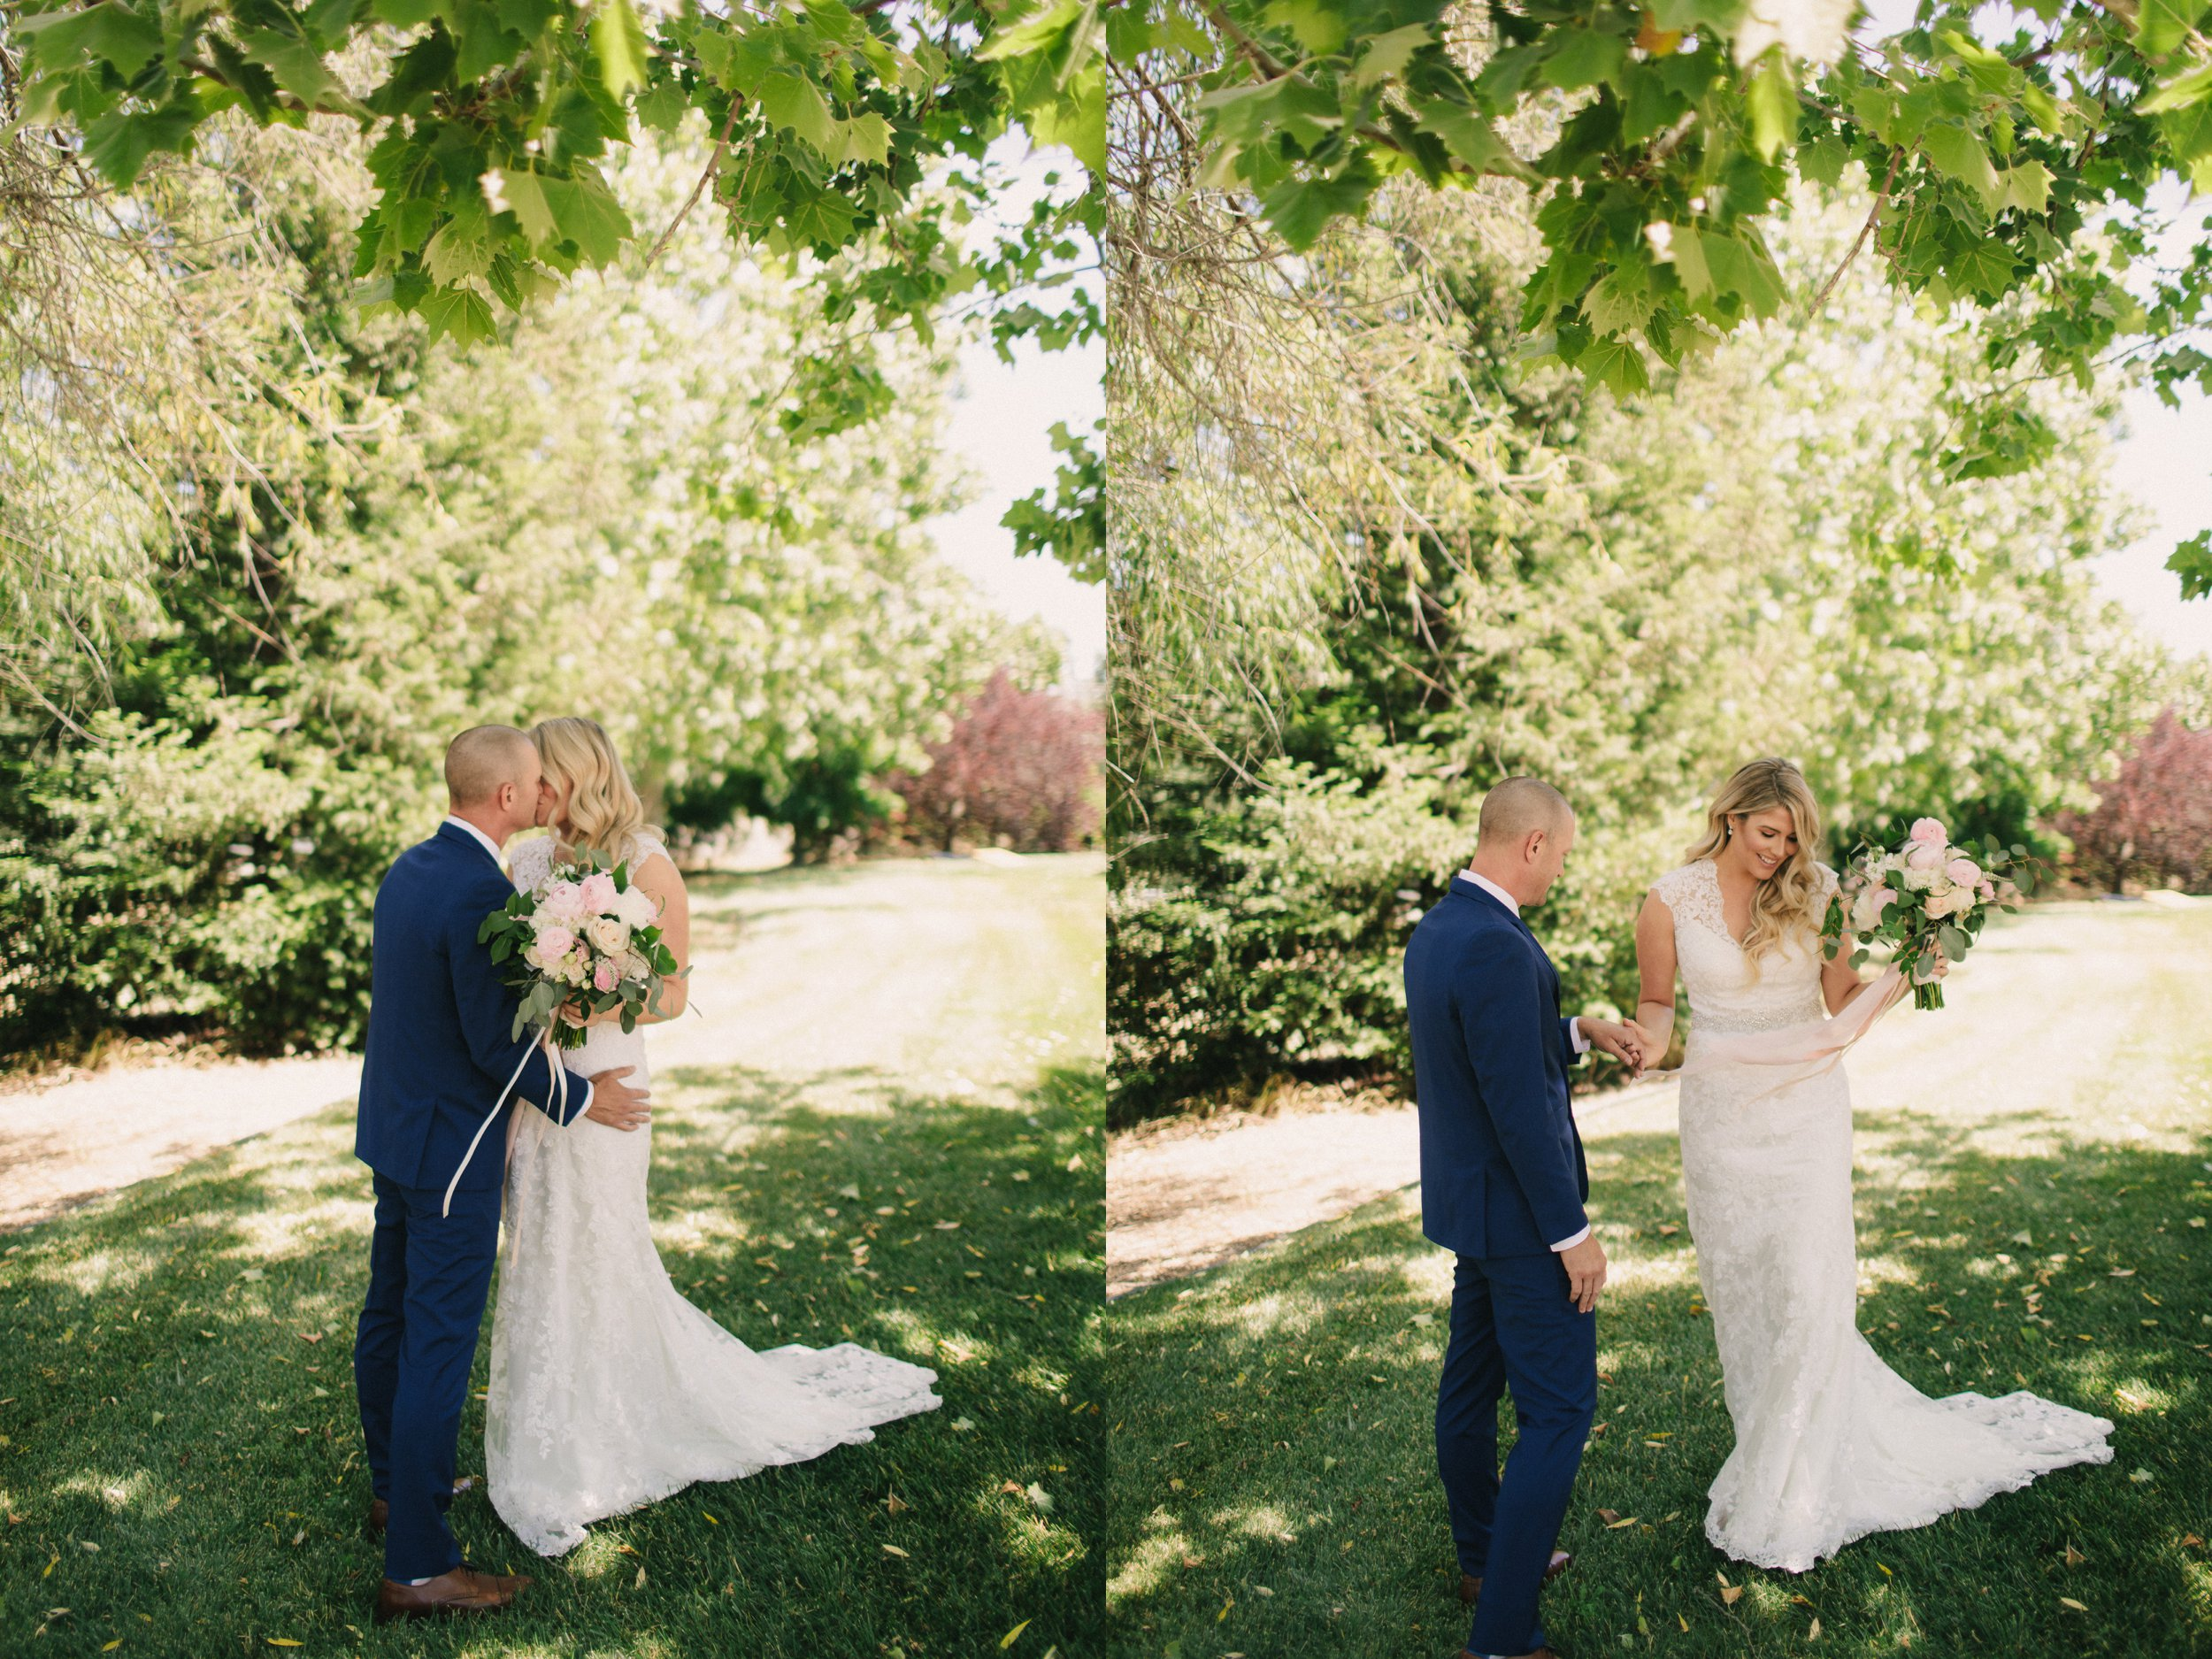 CaliforniaWedding|LindenCloverPhotography_0011.jpg